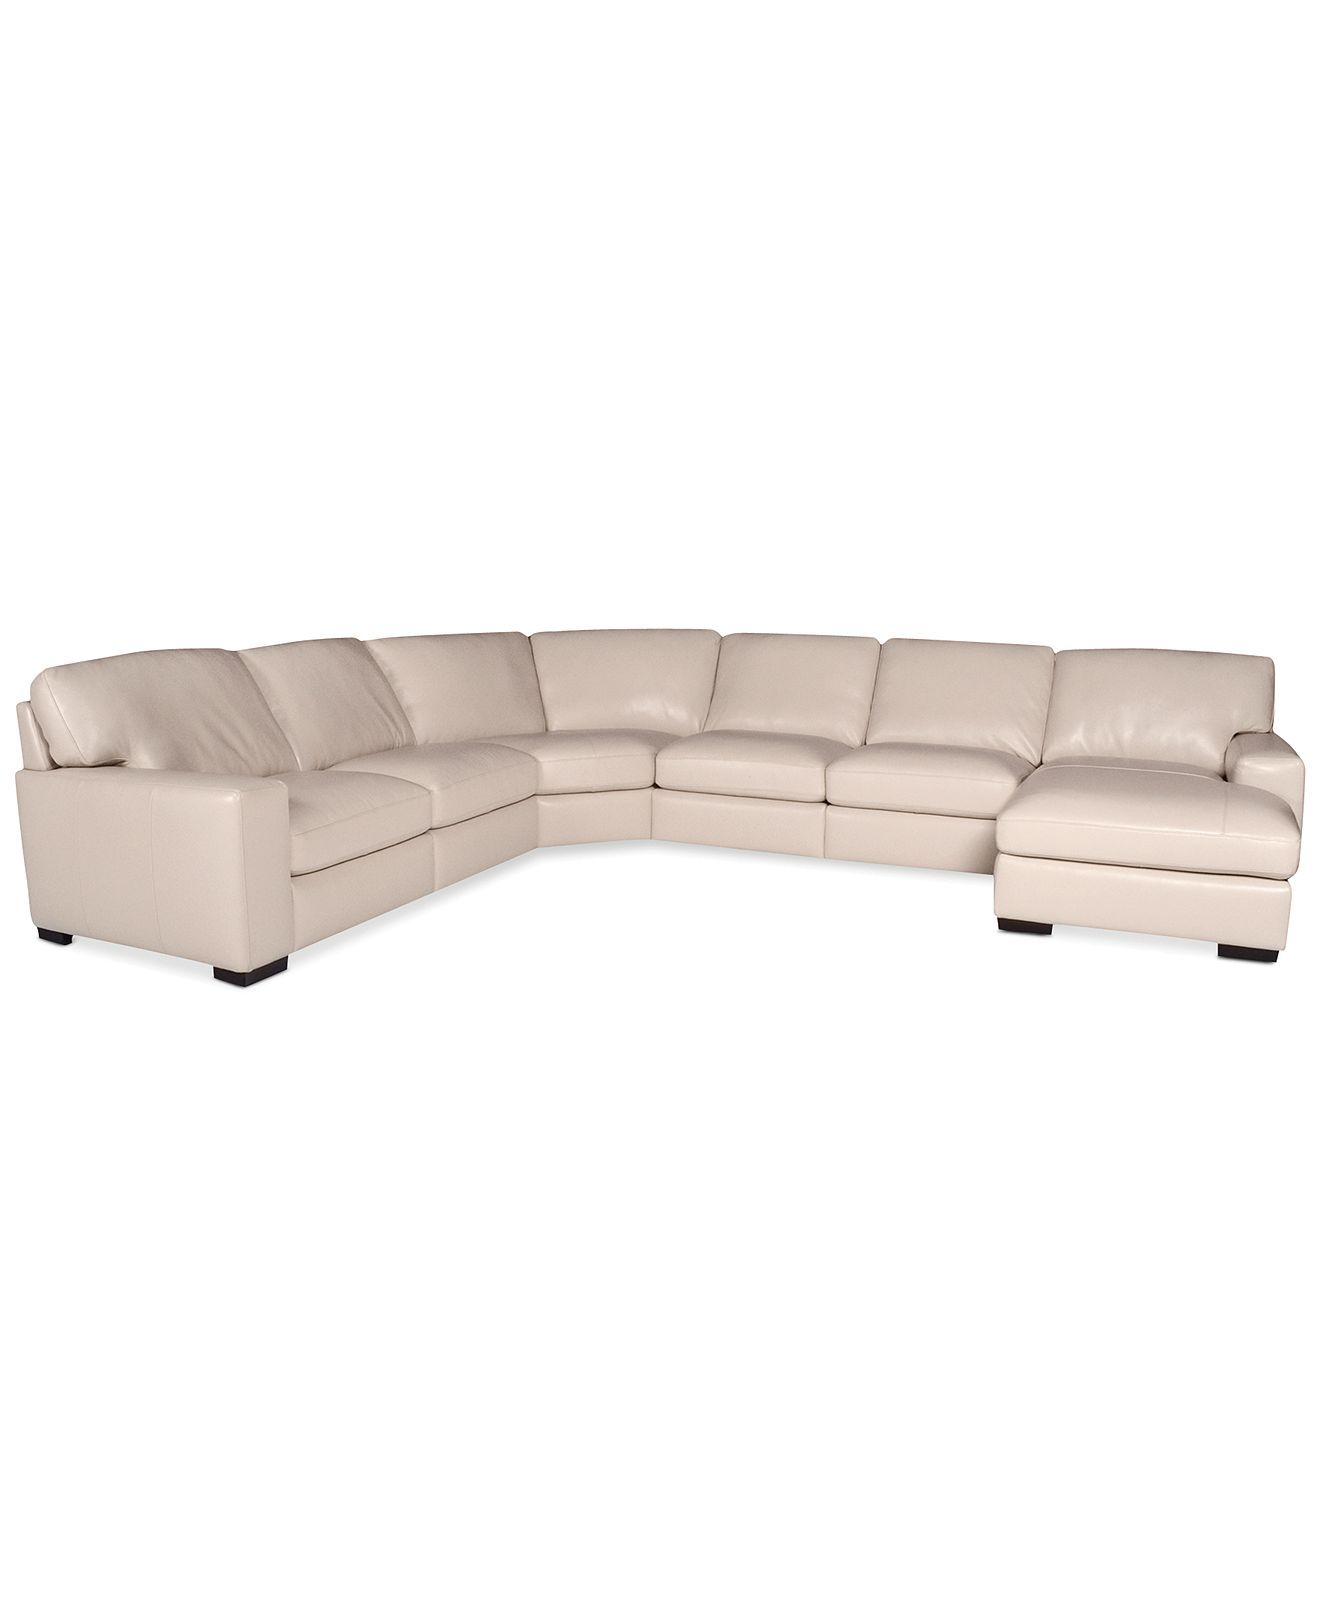 in Oyster Fabrizio Leather 6 Piece Chaise Sectional Sofa